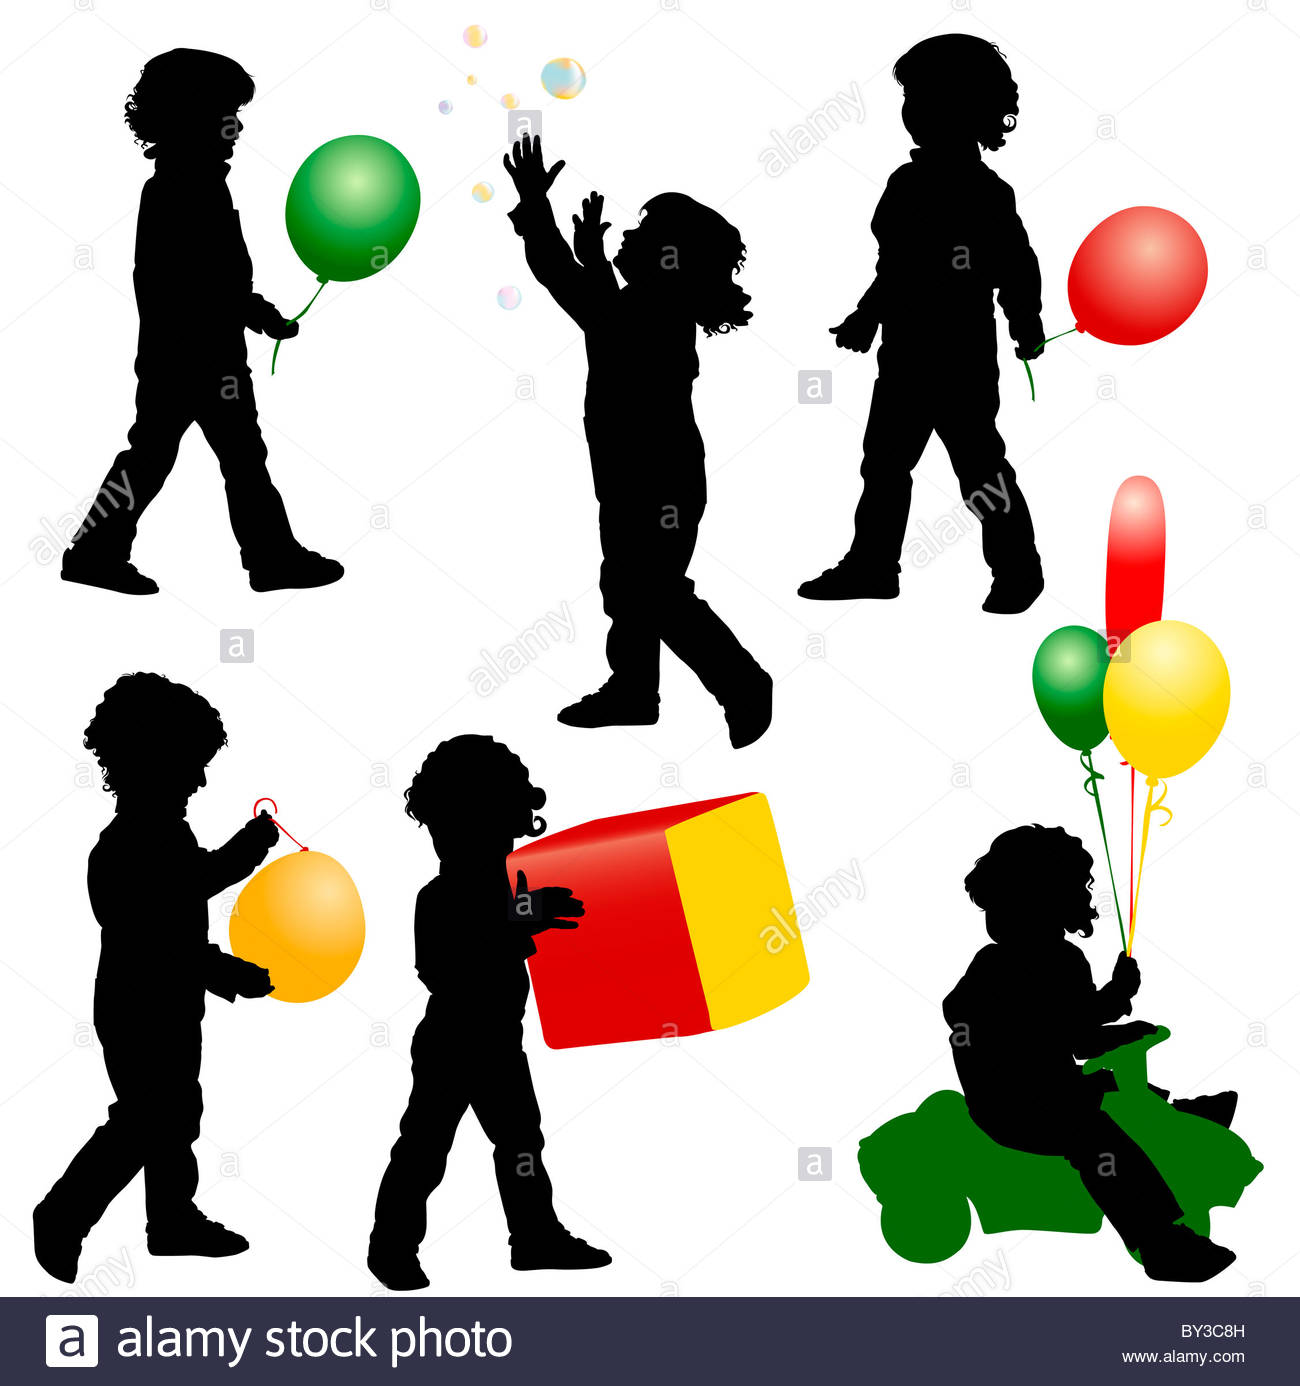 1300x1386 The Silhouettes Of A Boy Playing With A Balloon, Bubbles, Toys